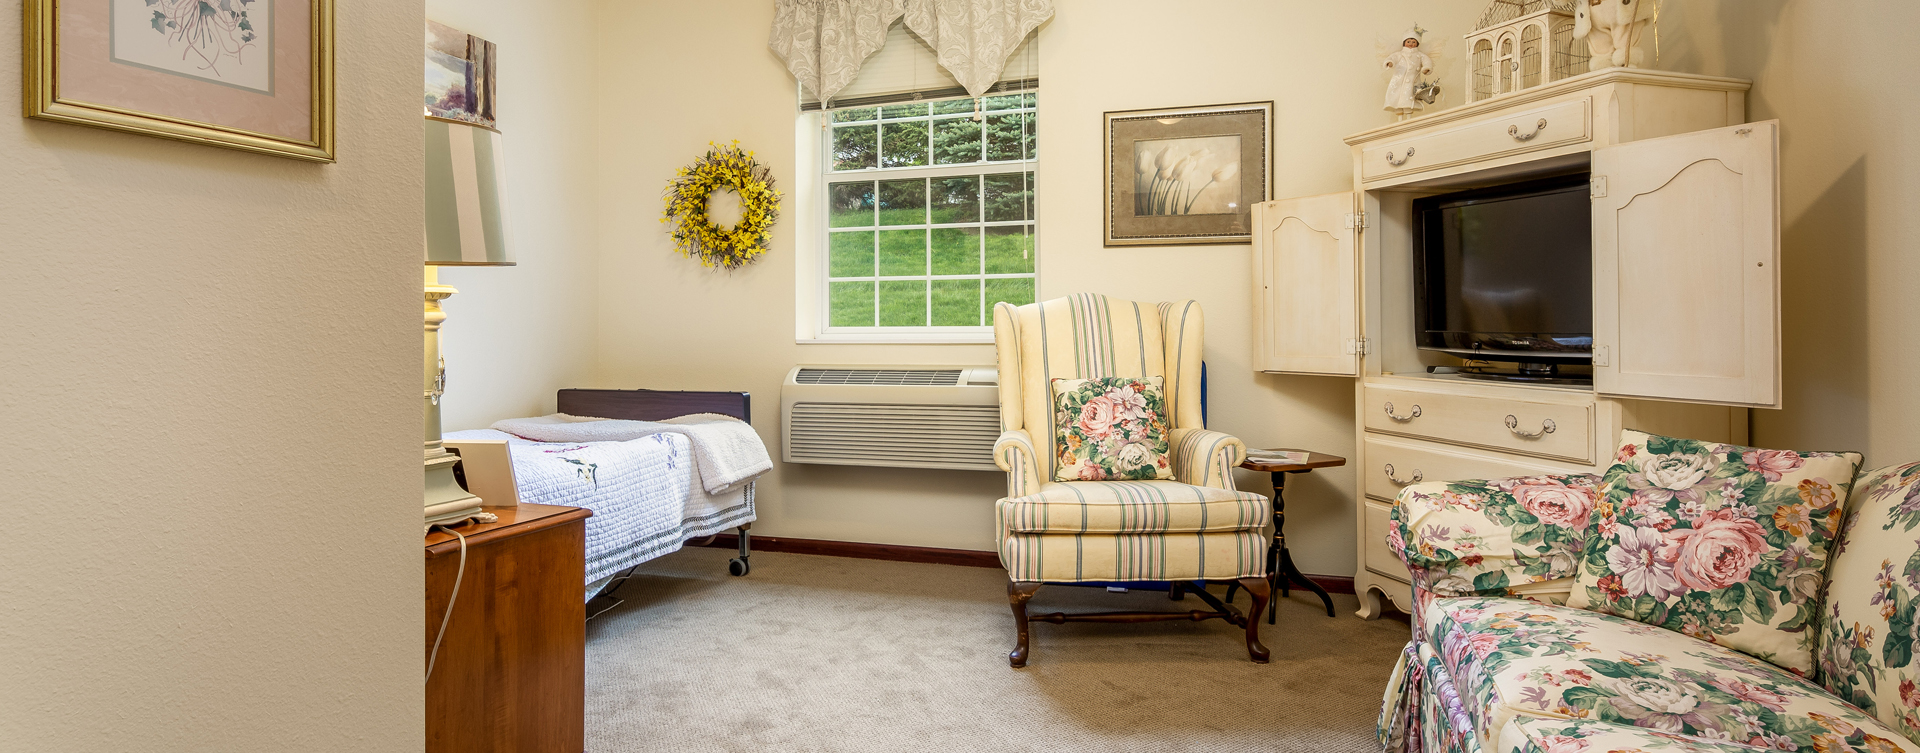 Enjoy senior friendly amenities, personal climate control and security in an apartment at Bickford of Okemos